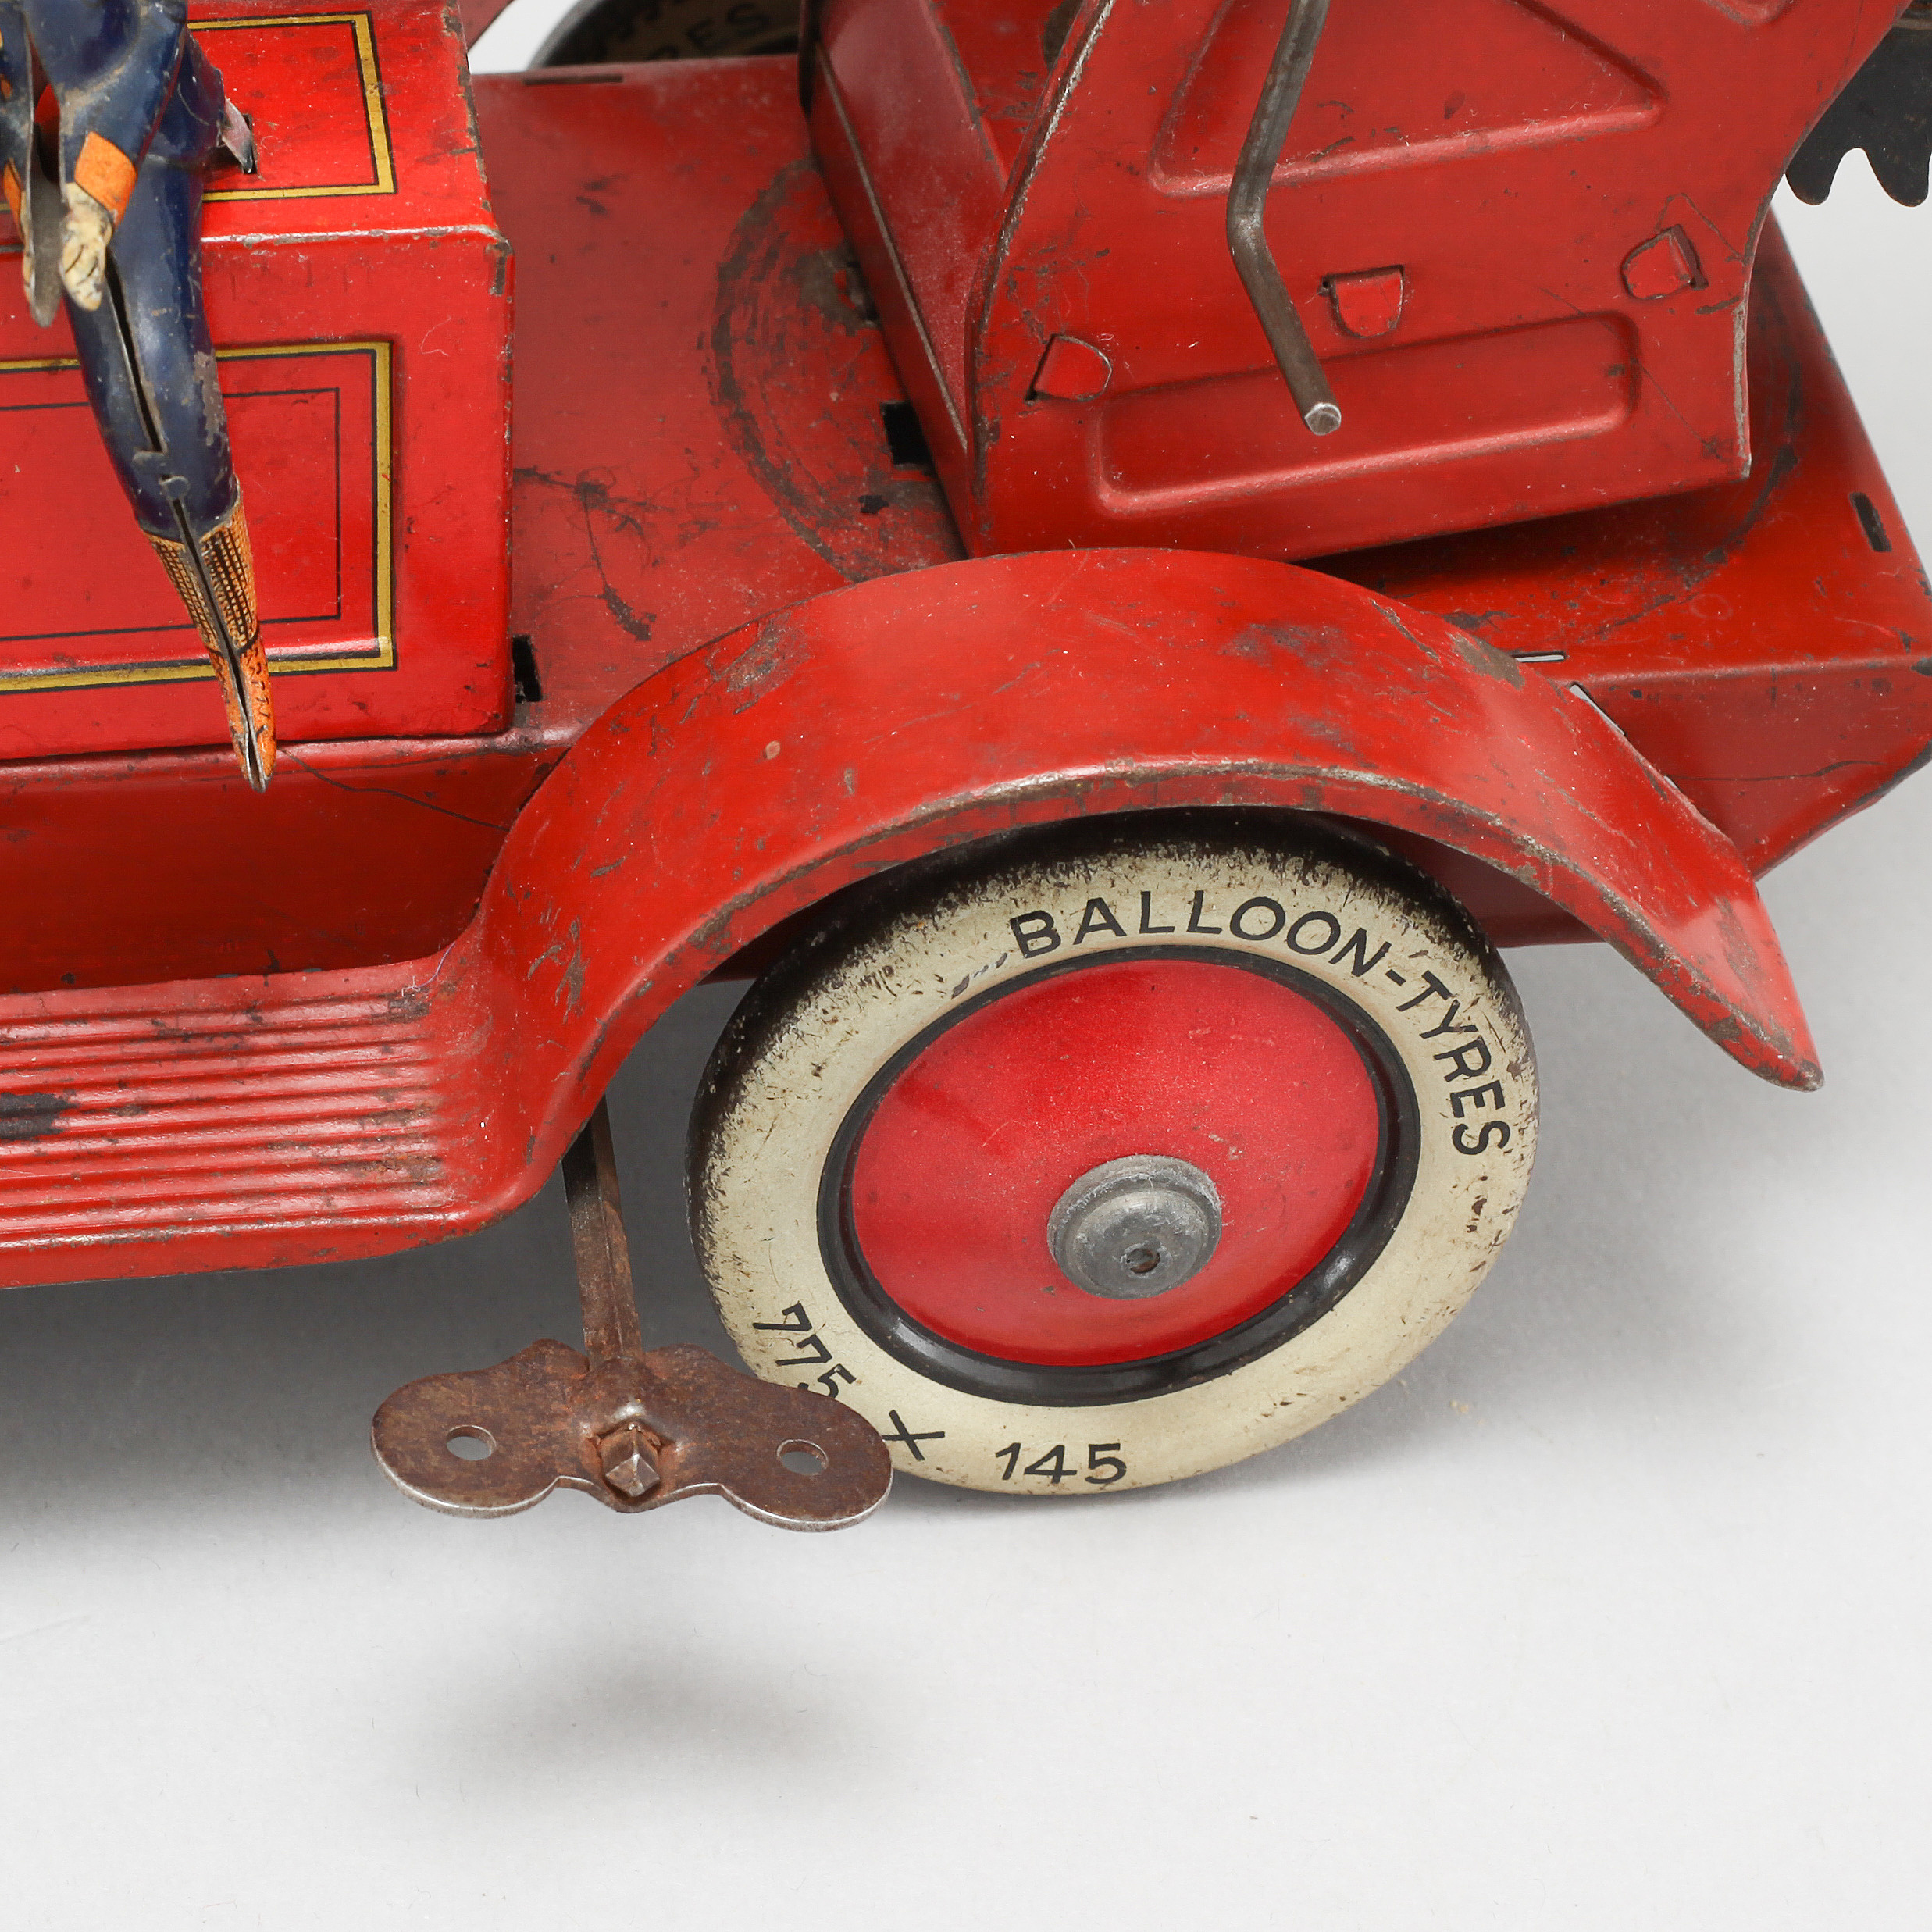 A 1930s Distler toy fire truck, Germany  - Bukowskis